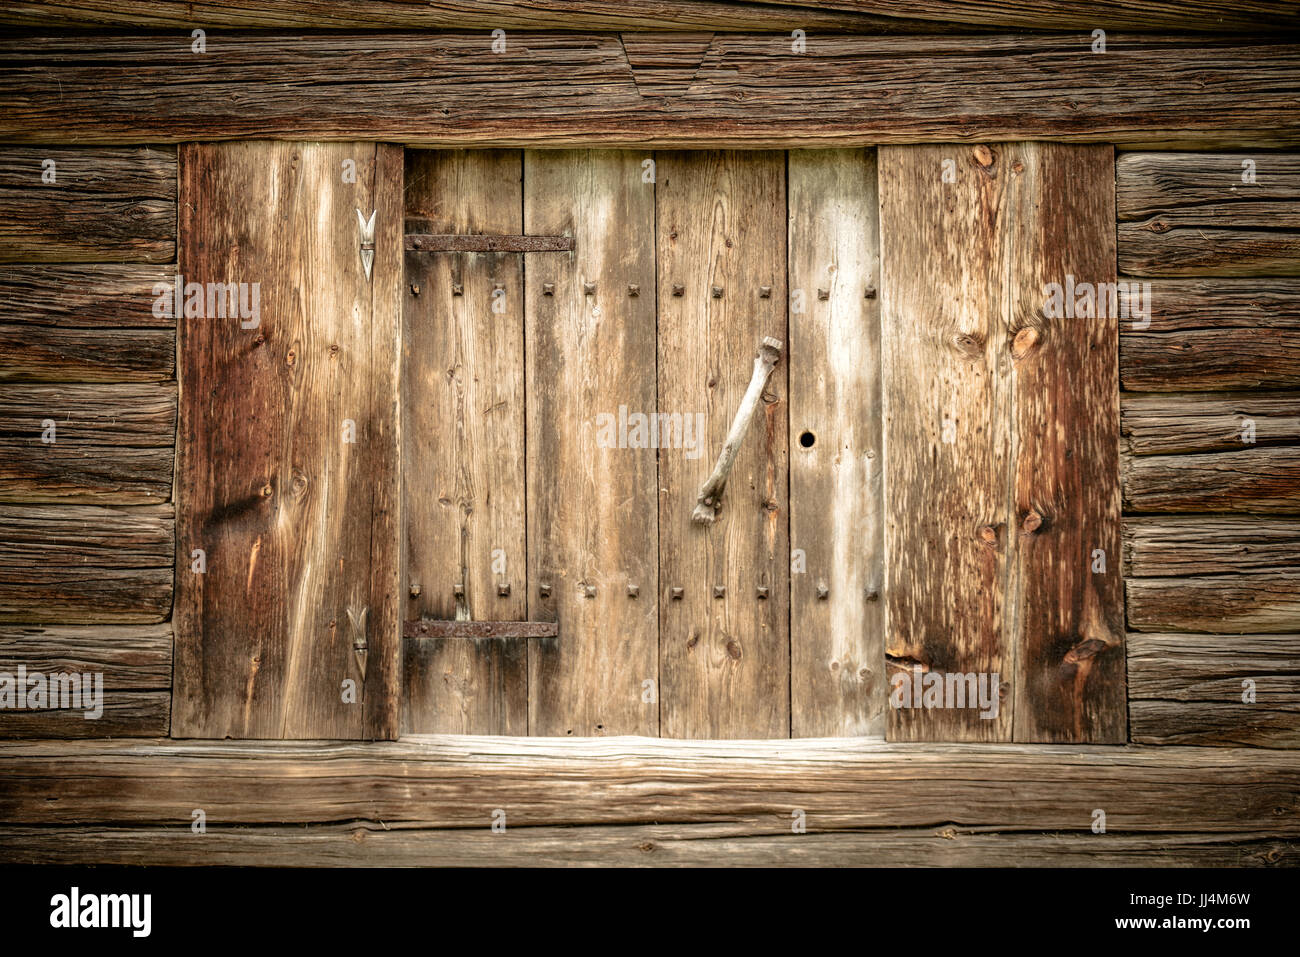 Old traditional handcrafted door in wooden house located in the garden of the Zorn house in Mora, Dalarna, Sweden. - Stock Image